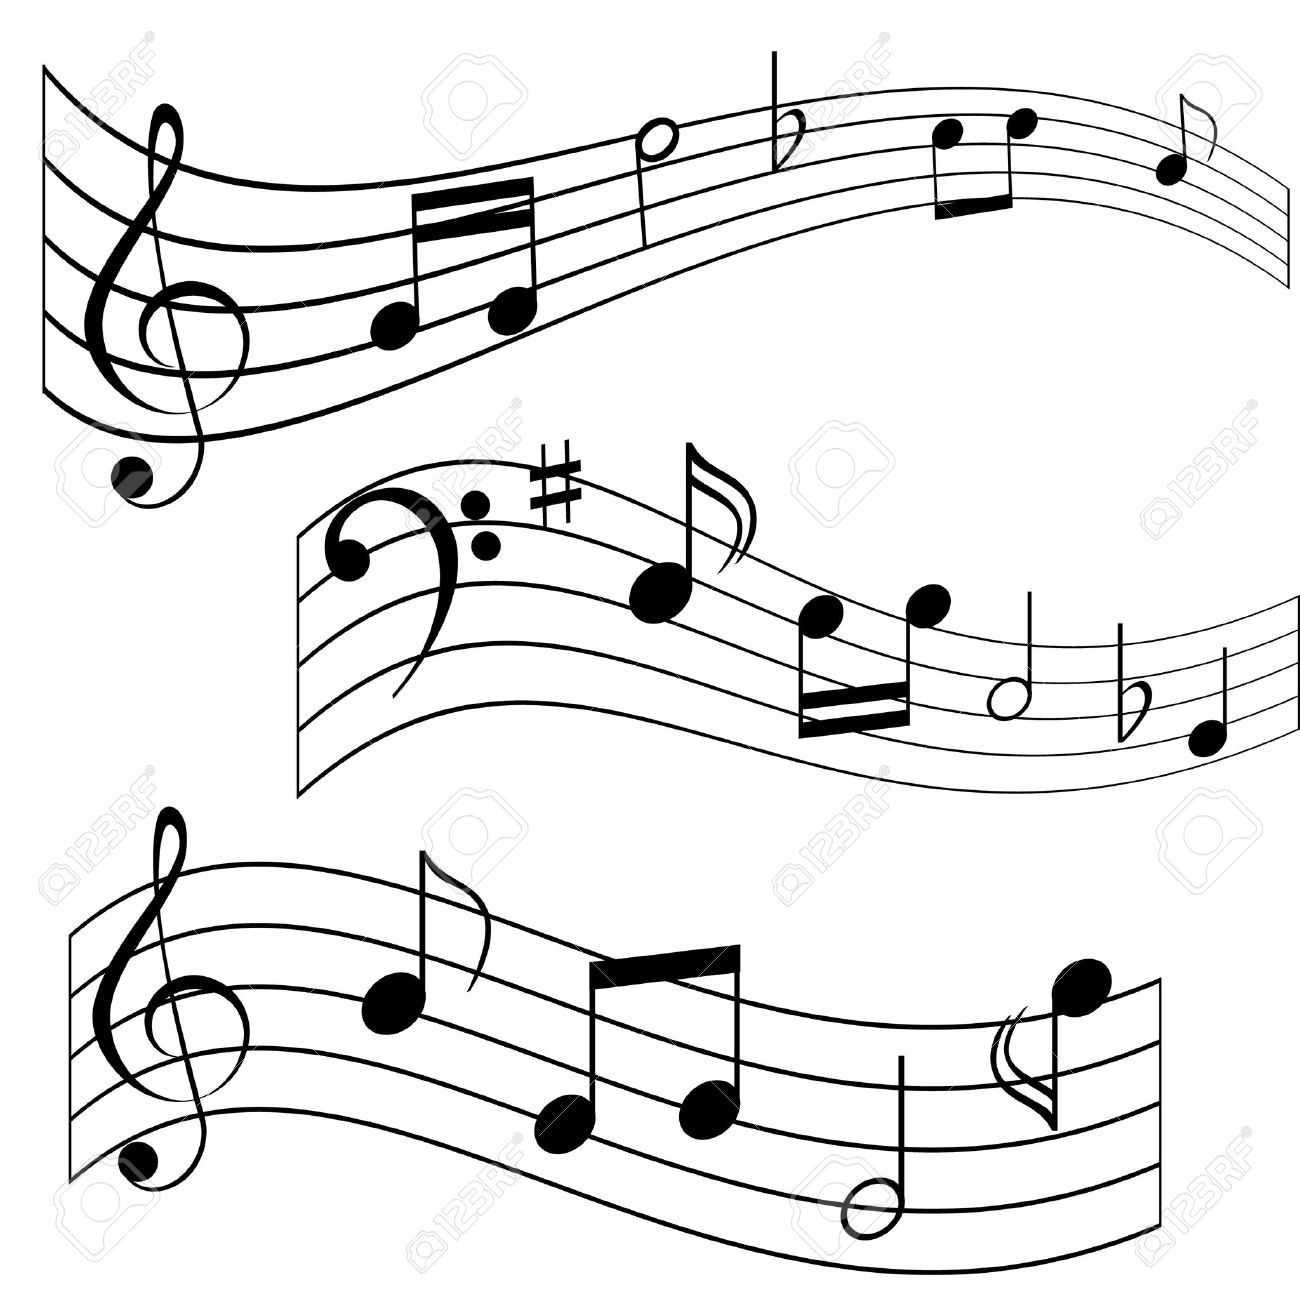 Musical notes on music sheet (melody made up) Stock Vector - 7173555